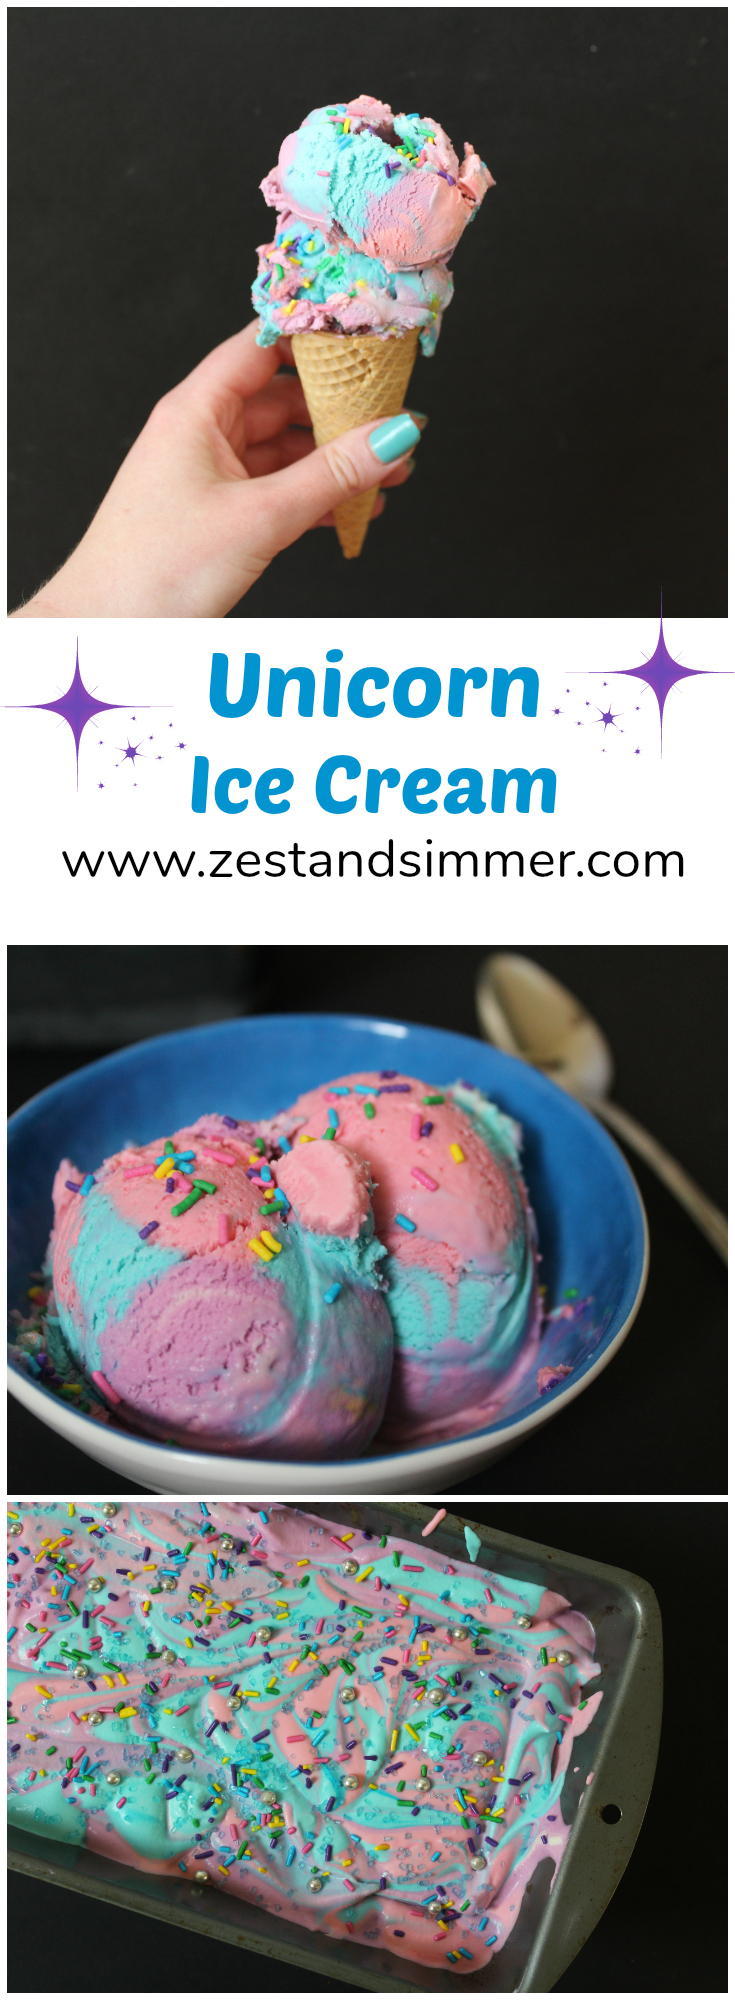 This magical Unicorn Ice Cream is a delicious way to brighten your day! This no-churn recipe calls for only a few ingredients and is fun for kids and adults alike!